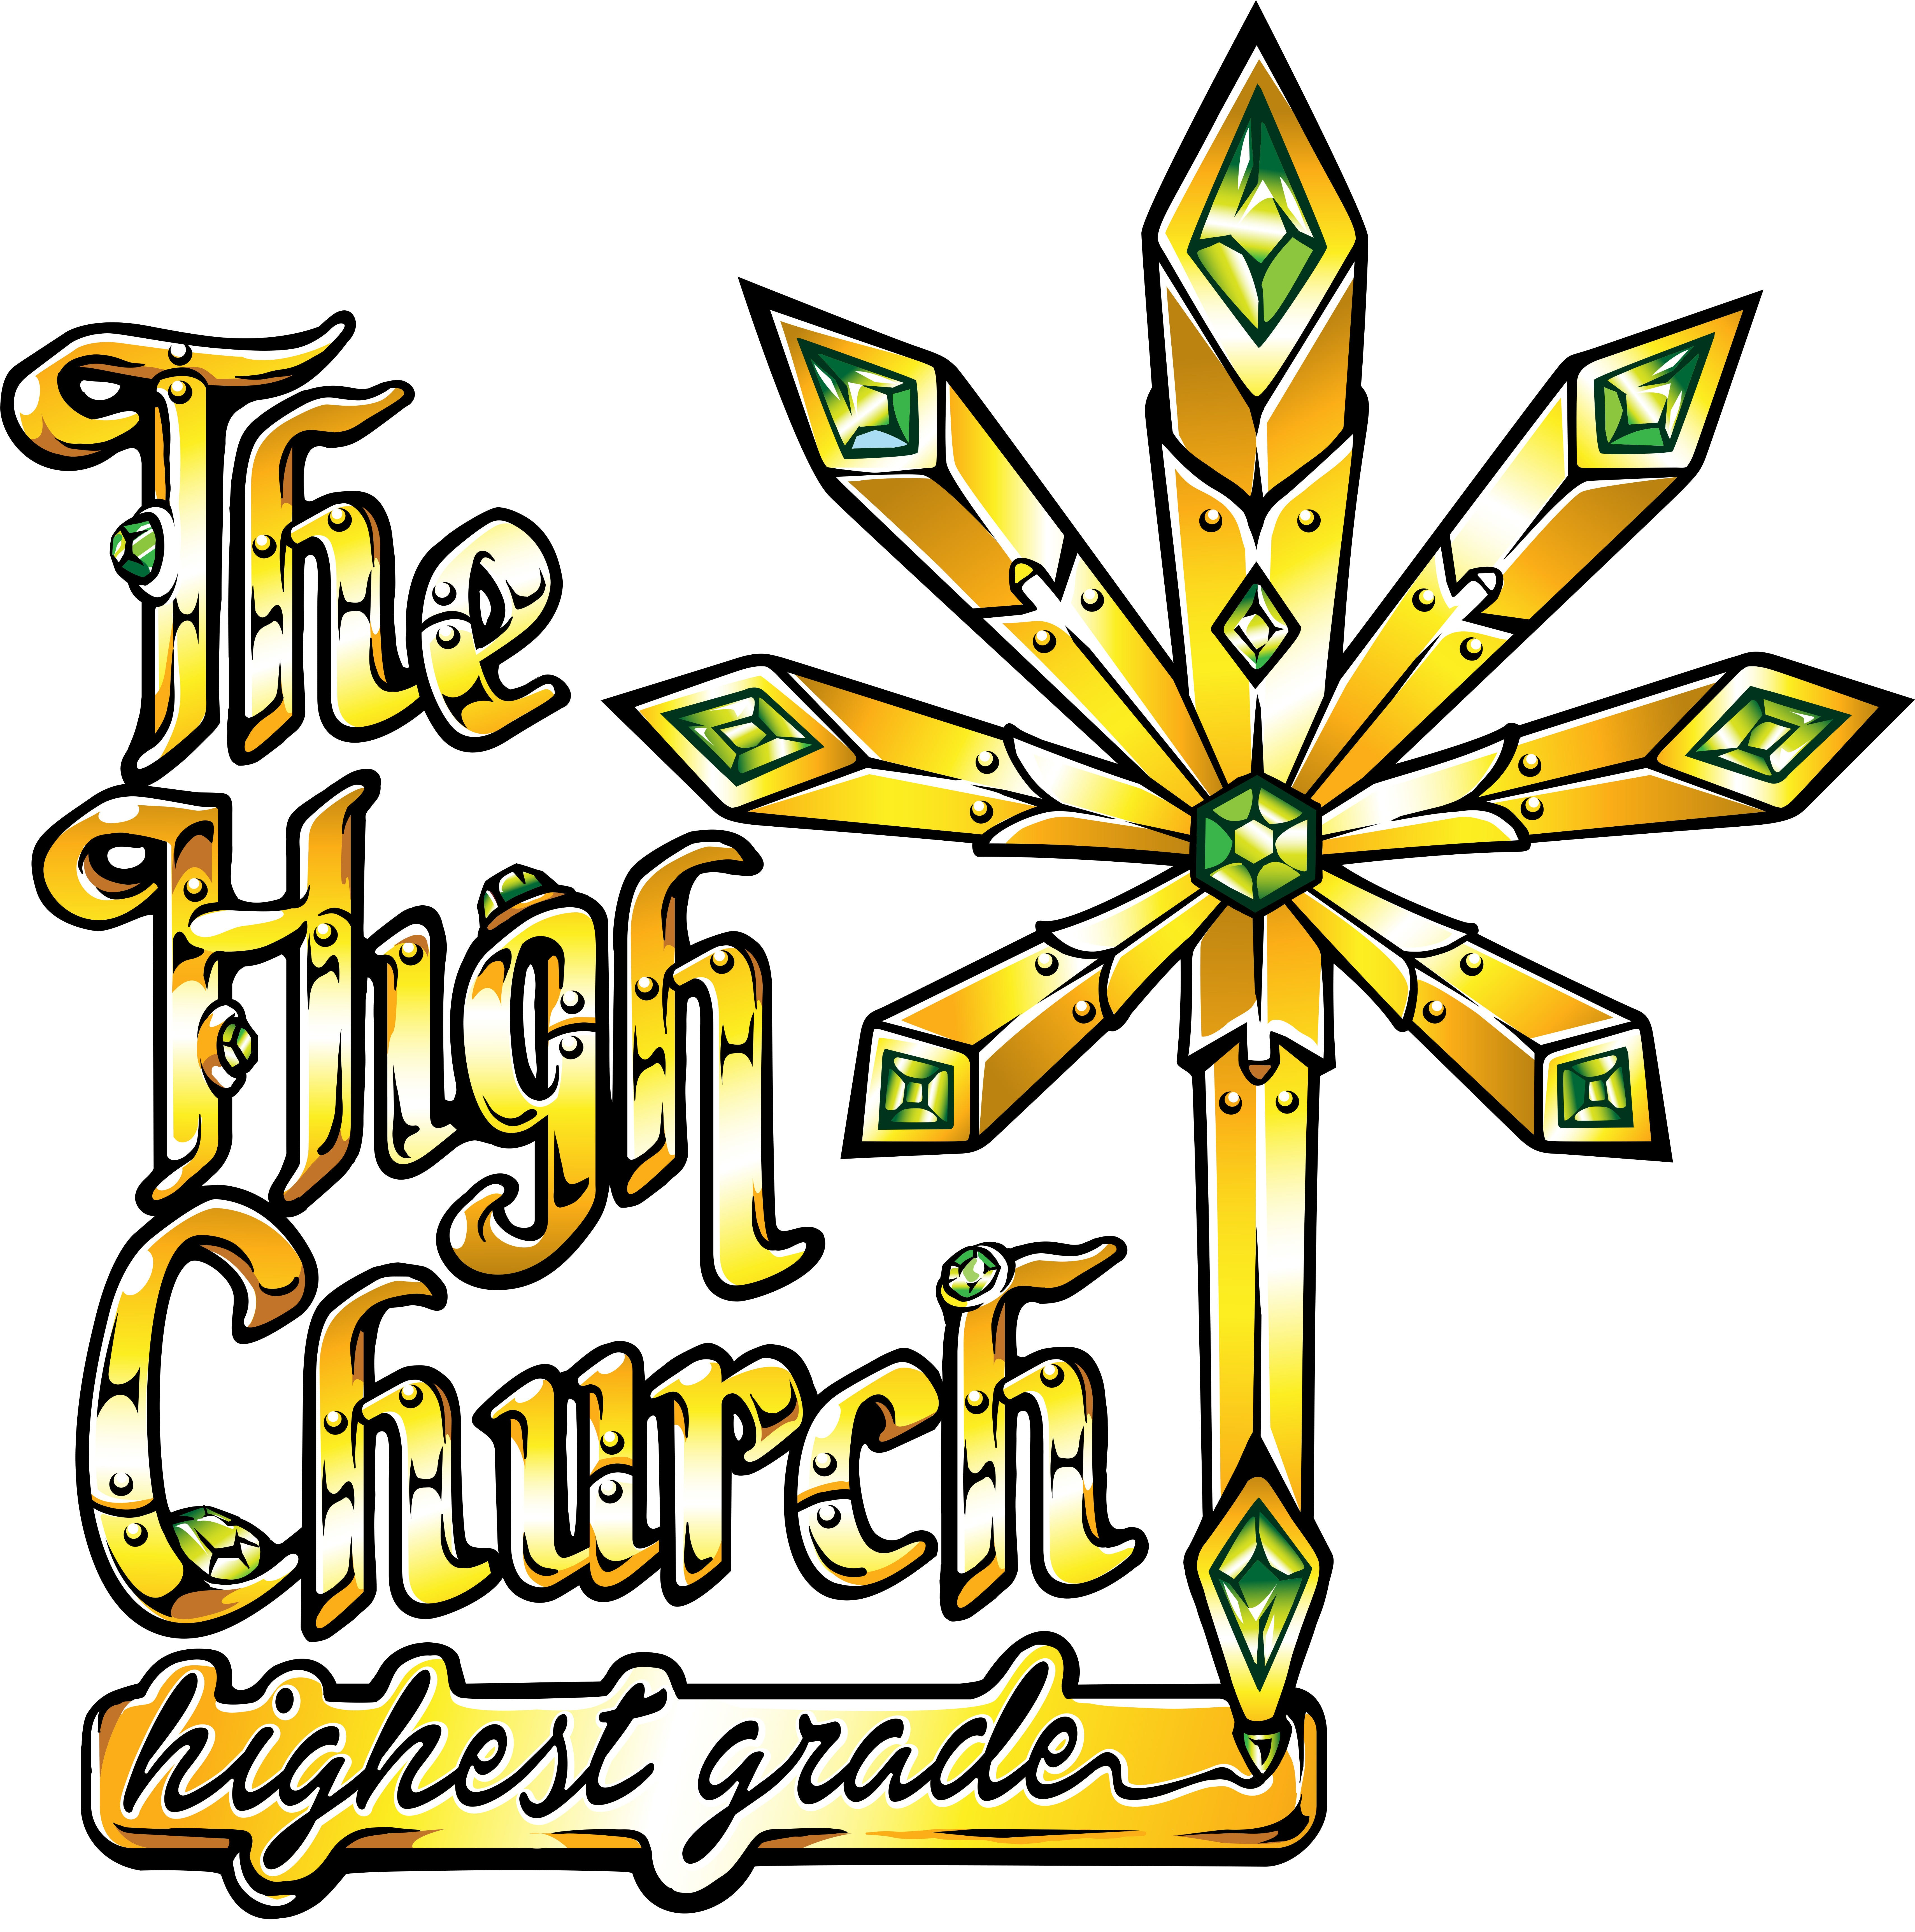 The High Church VIP - Medical Marijuana Doctors - Cannabizme.com